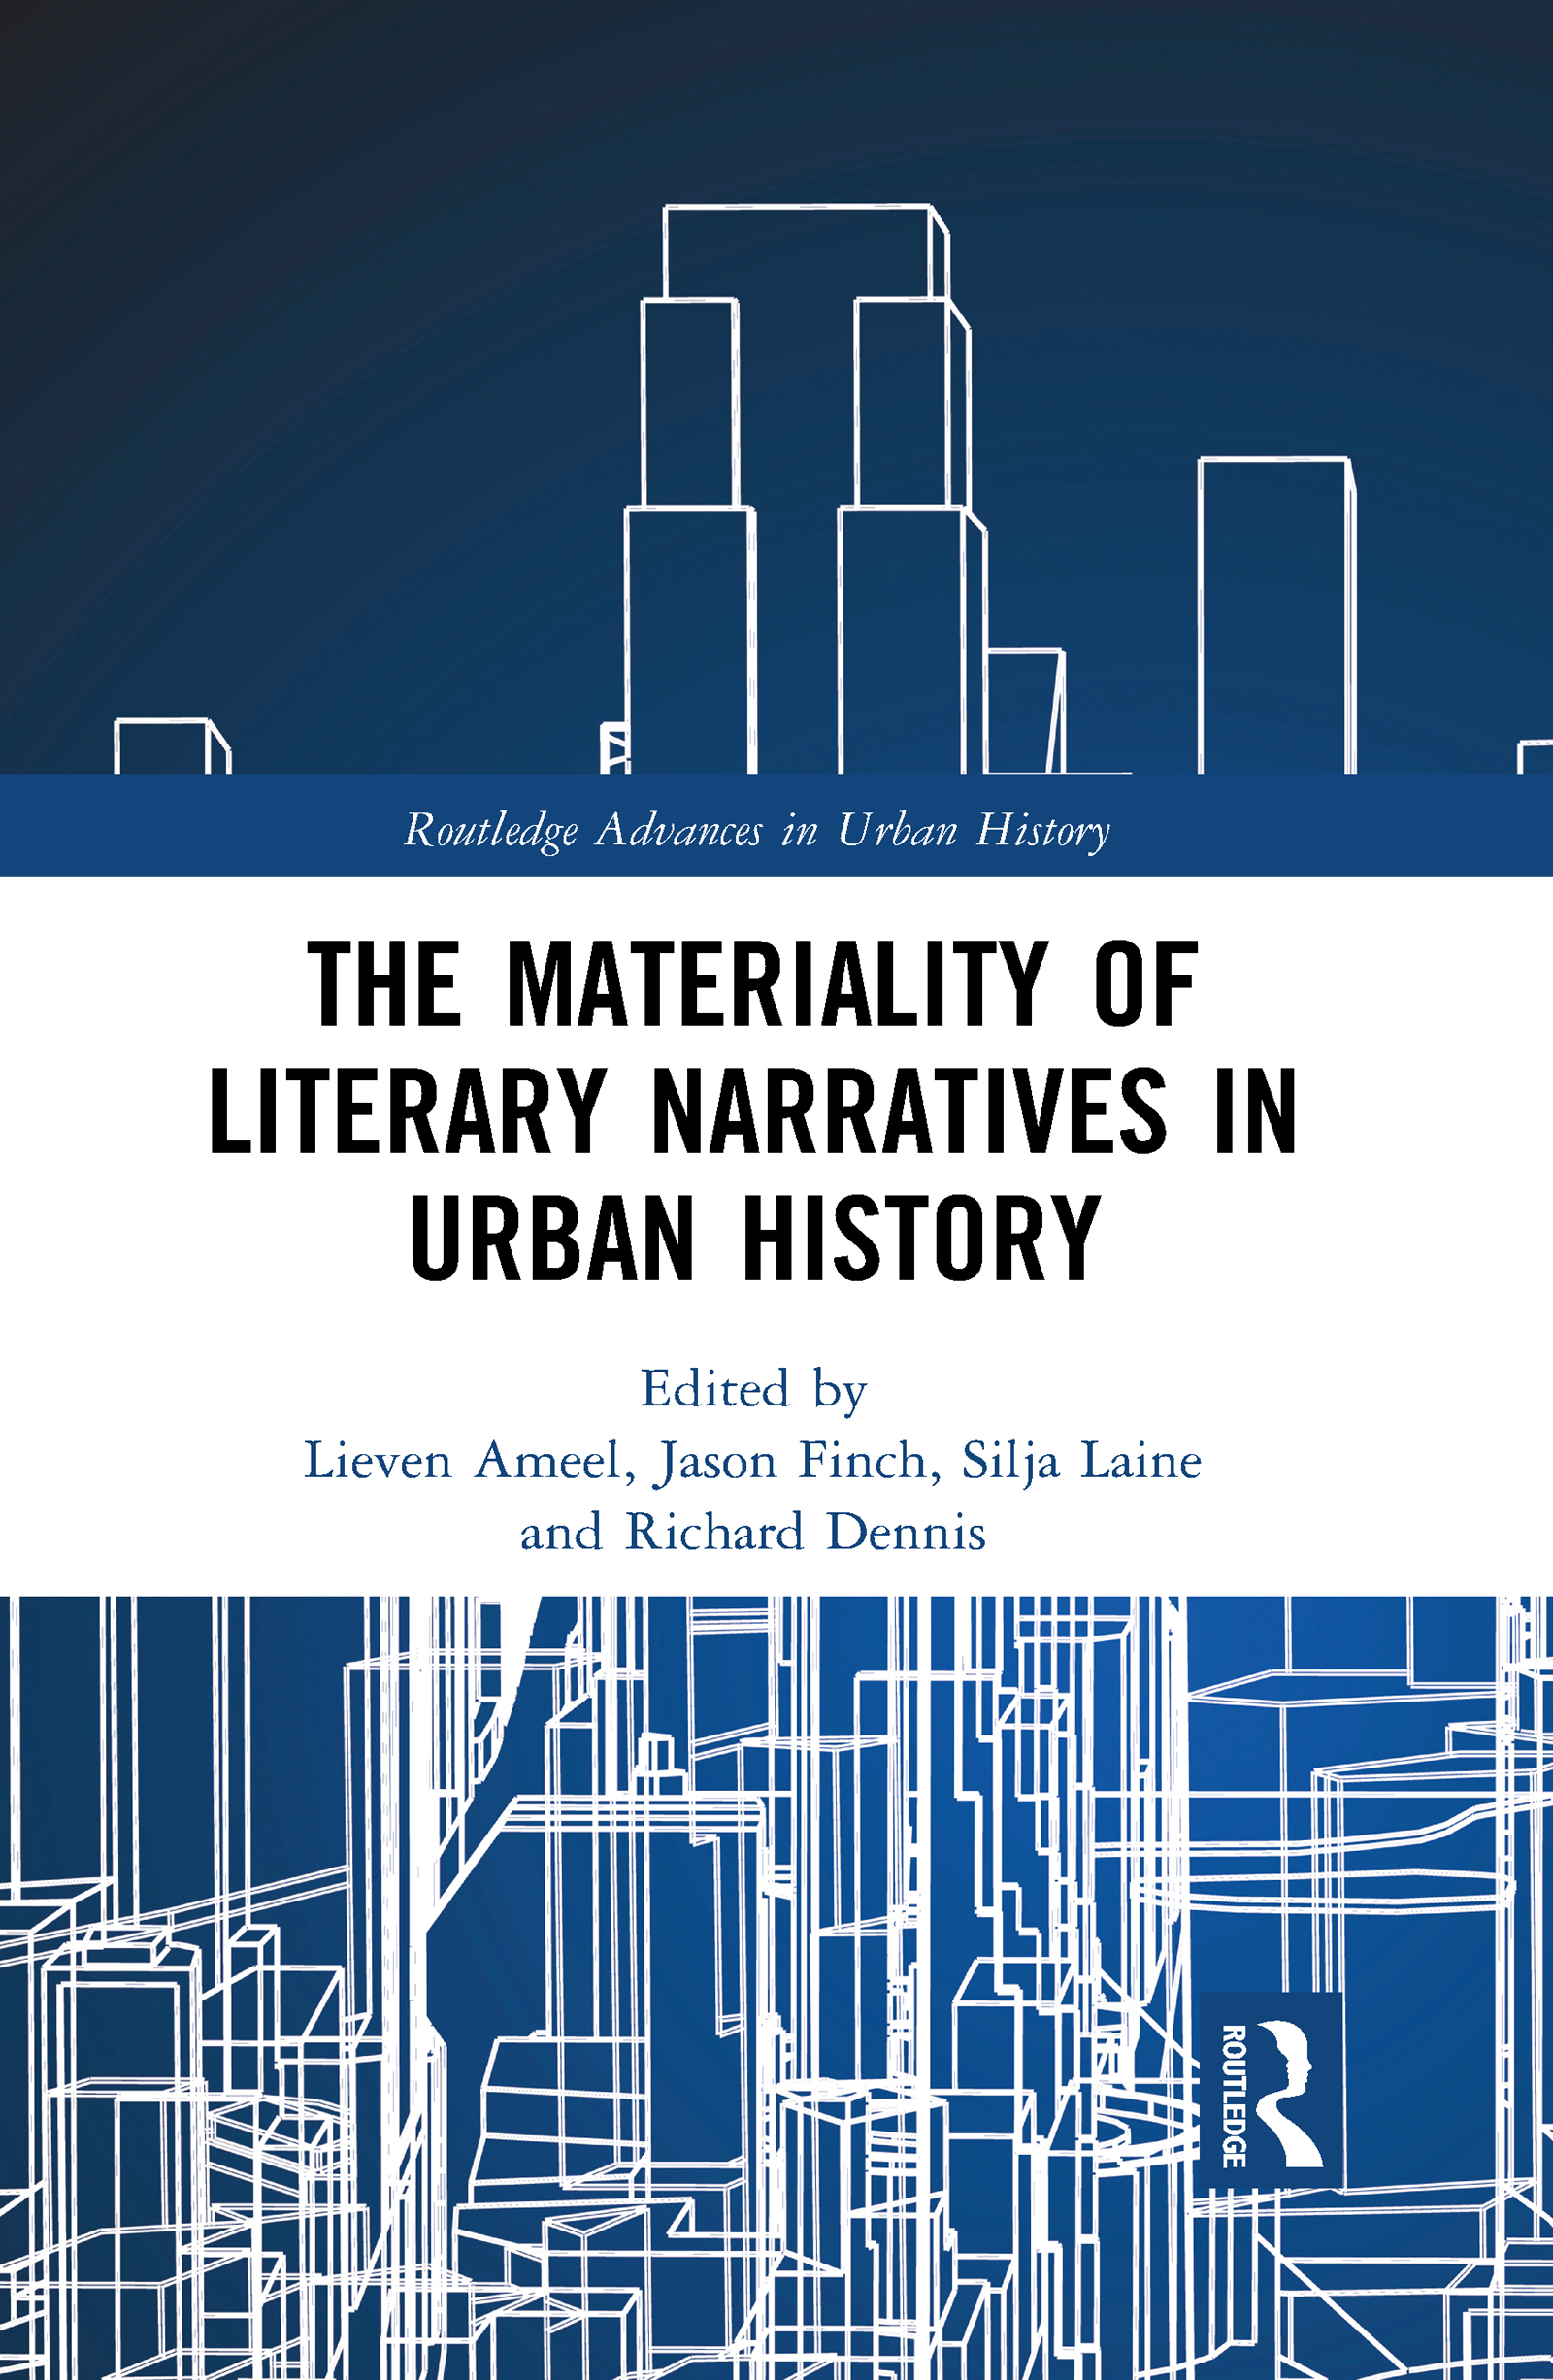 The Materiality of Literary Narratives in Urban History